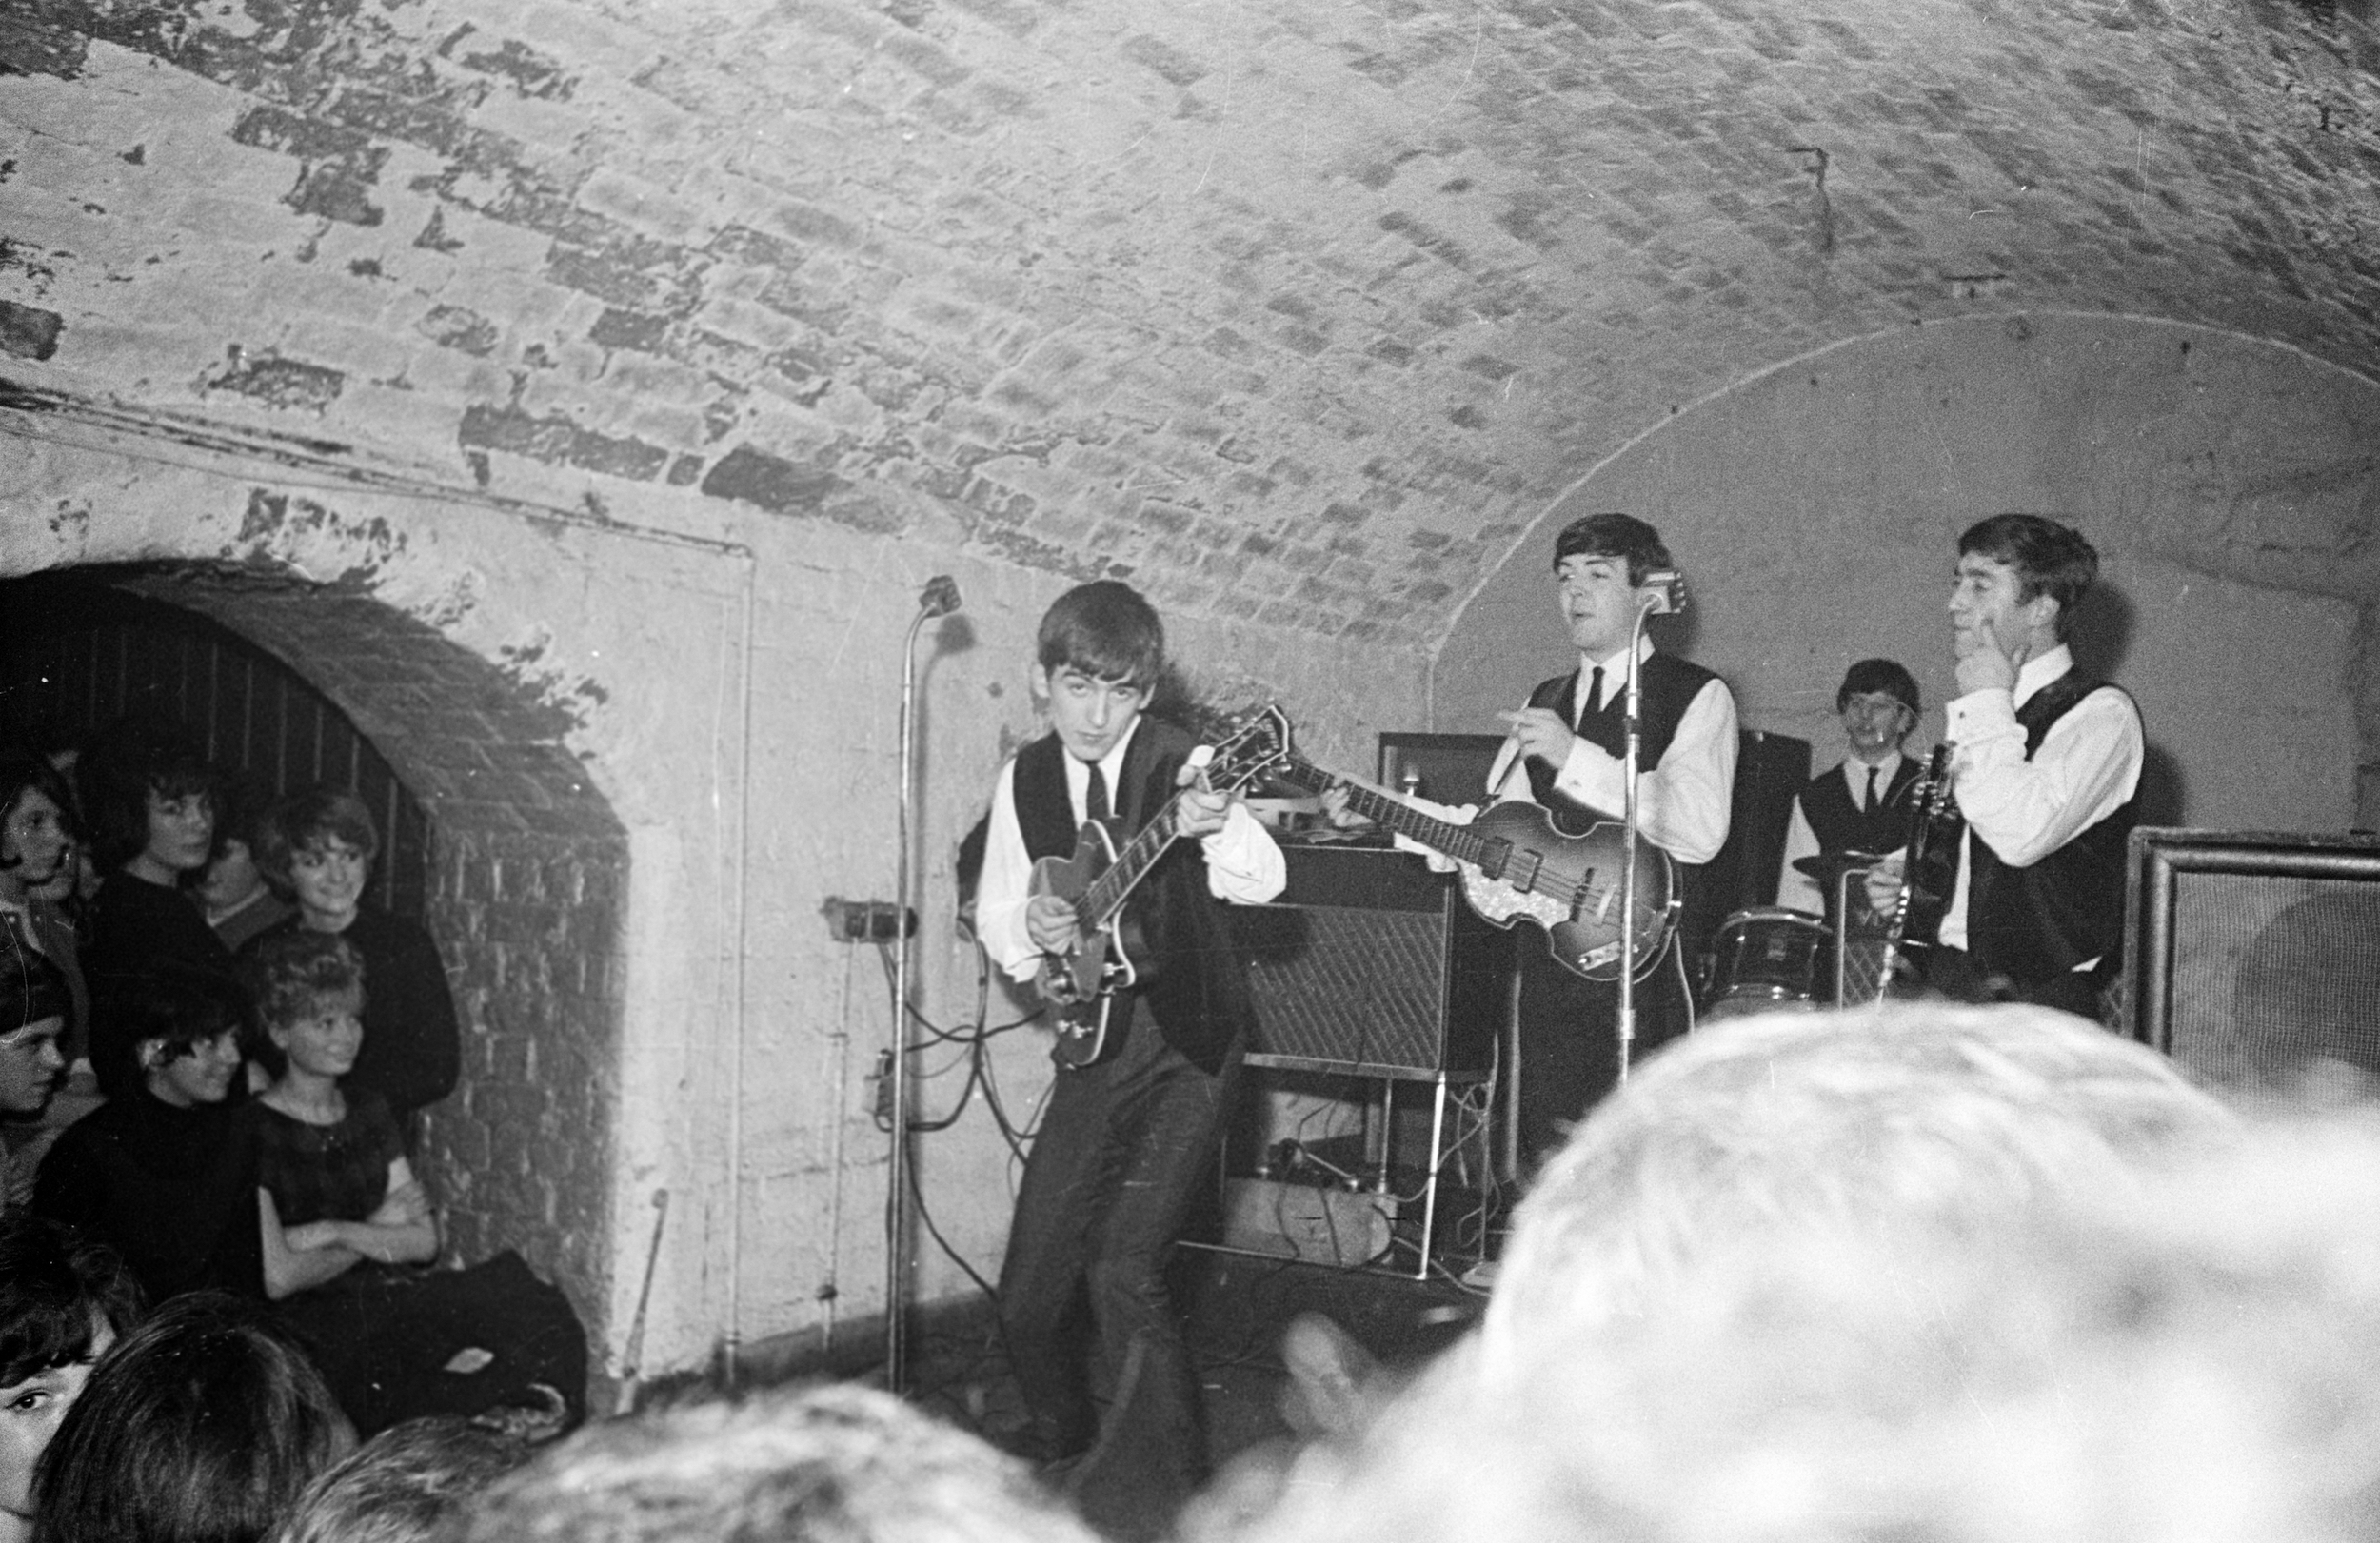 THE BEATLES MAKE THEIR FINAL APPEARANCE AT THE CAVERN IN LIVERPOOL ...